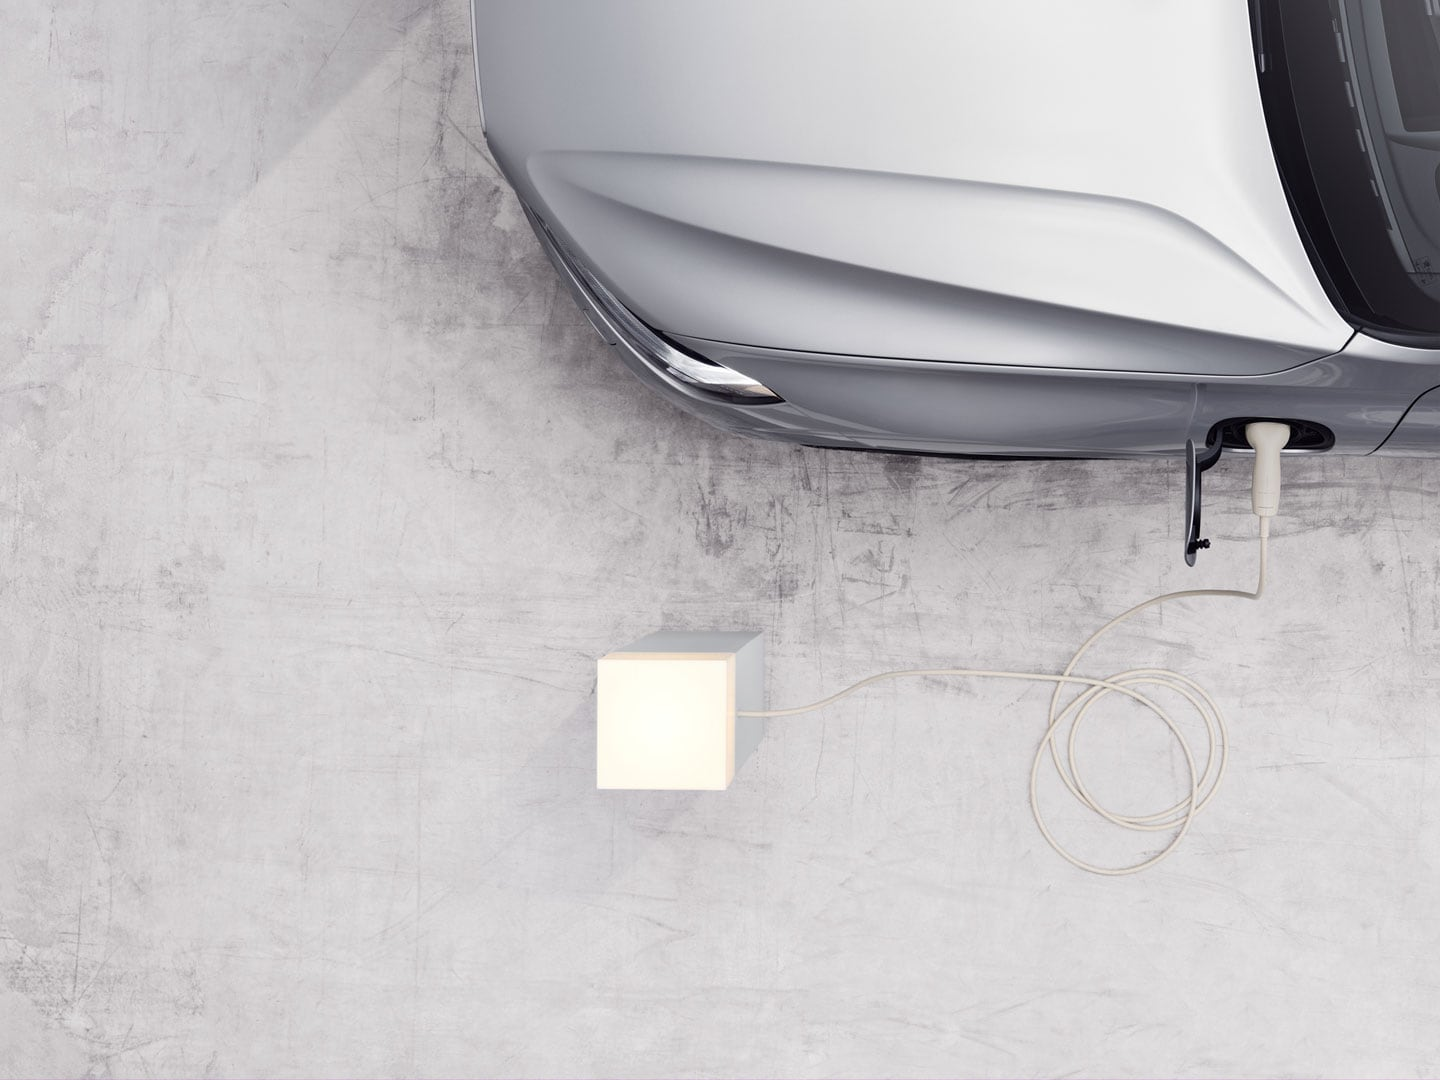 A Volvo Recharge car plugged in to a charging box.